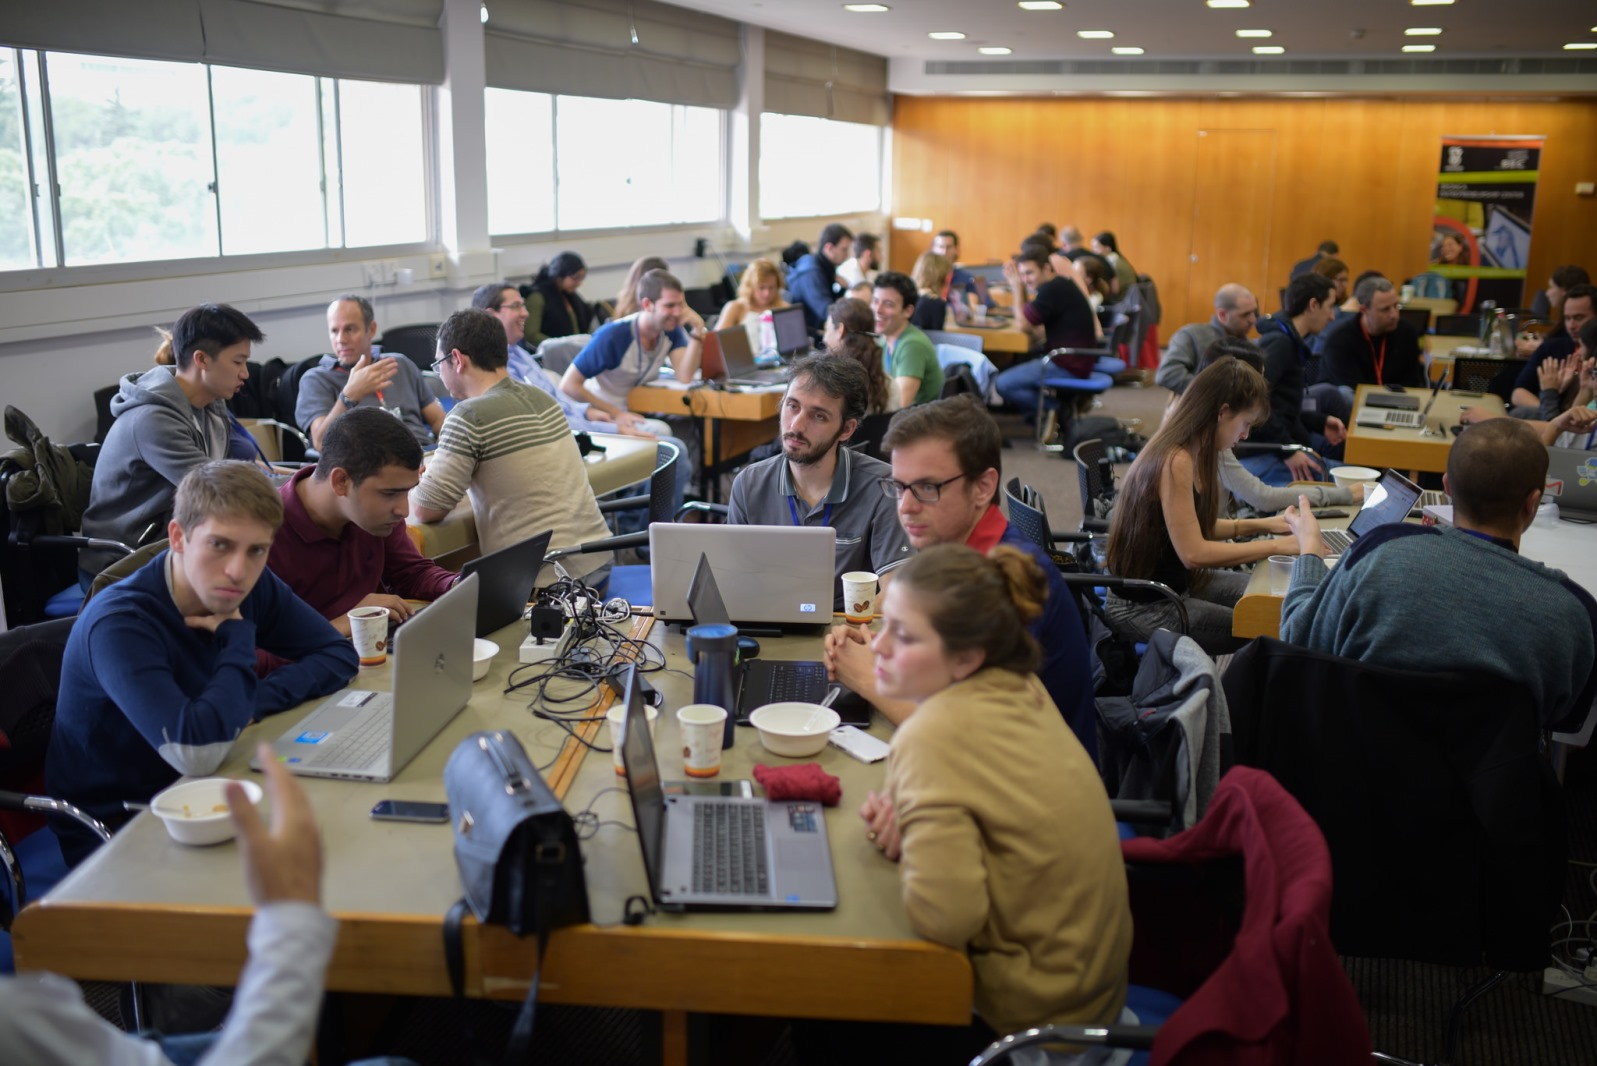 Students during the 3DS contest at the Technion. Photo courtesy of the Technion Spokesperson's Office